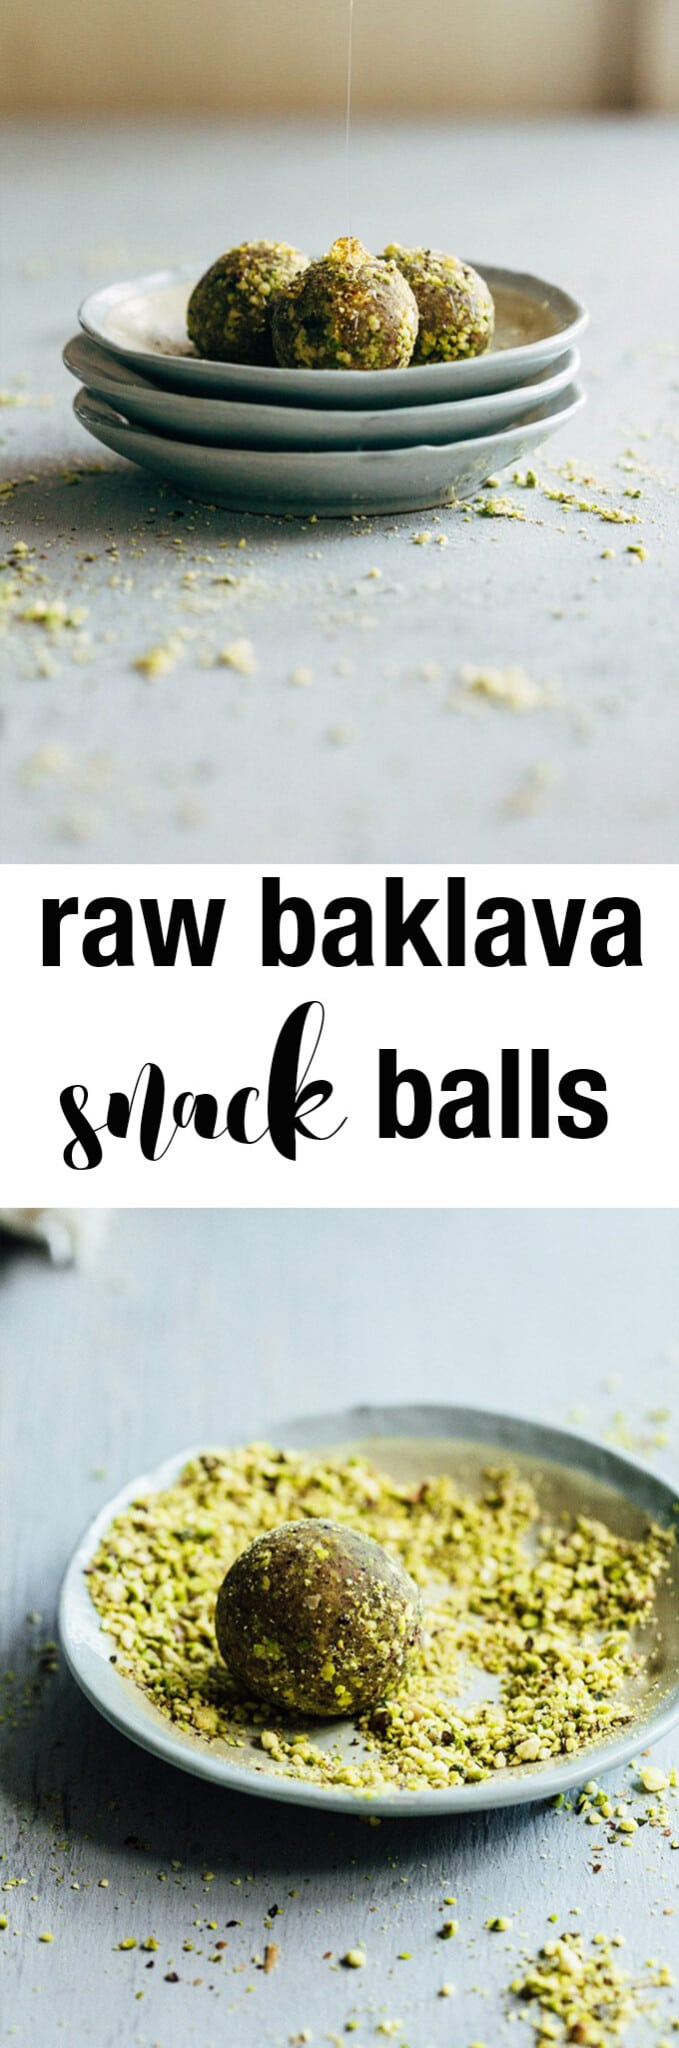 raw-baklava-snack-balls-pin